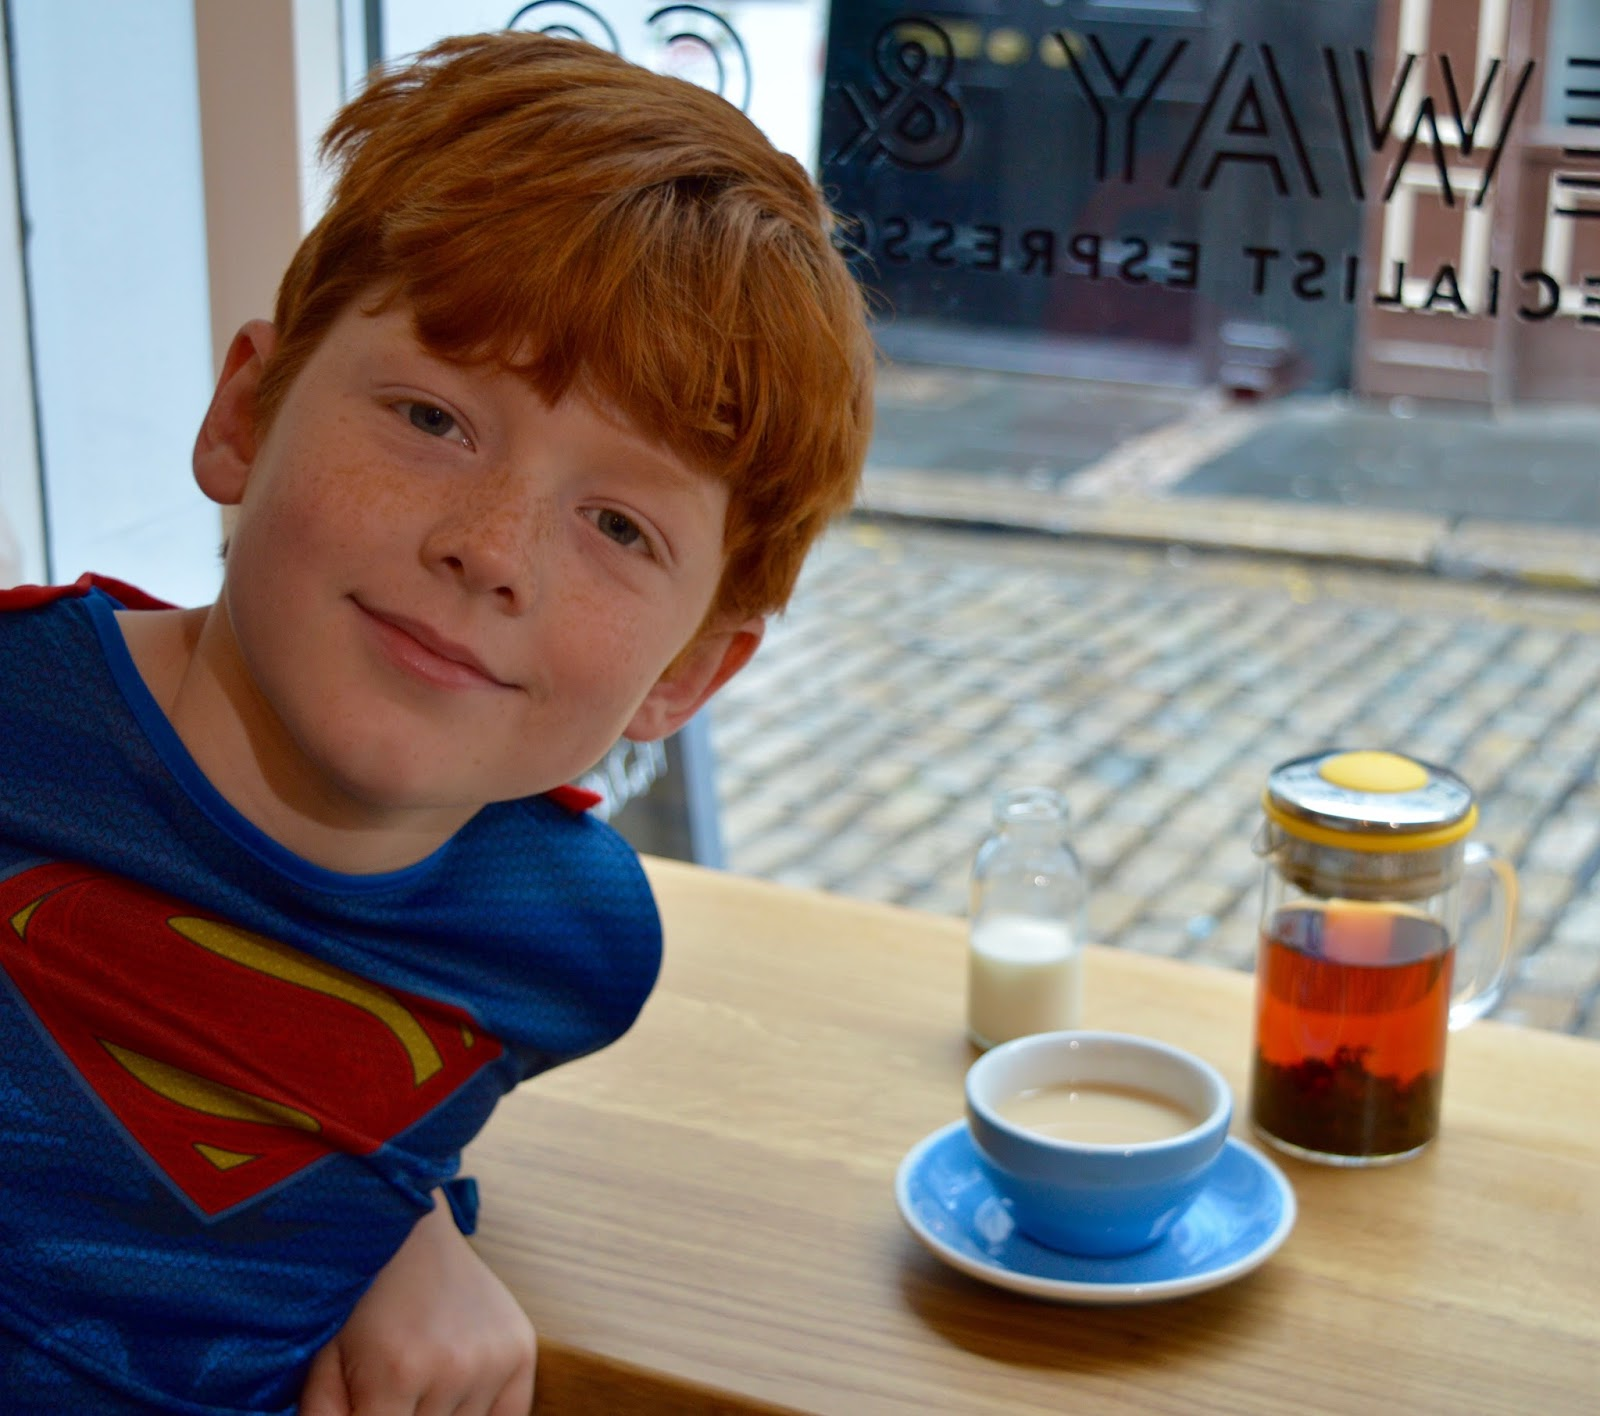 Laneway & Co - An Independent Coffee Shop in Newcastle serving FREE Babyccinos